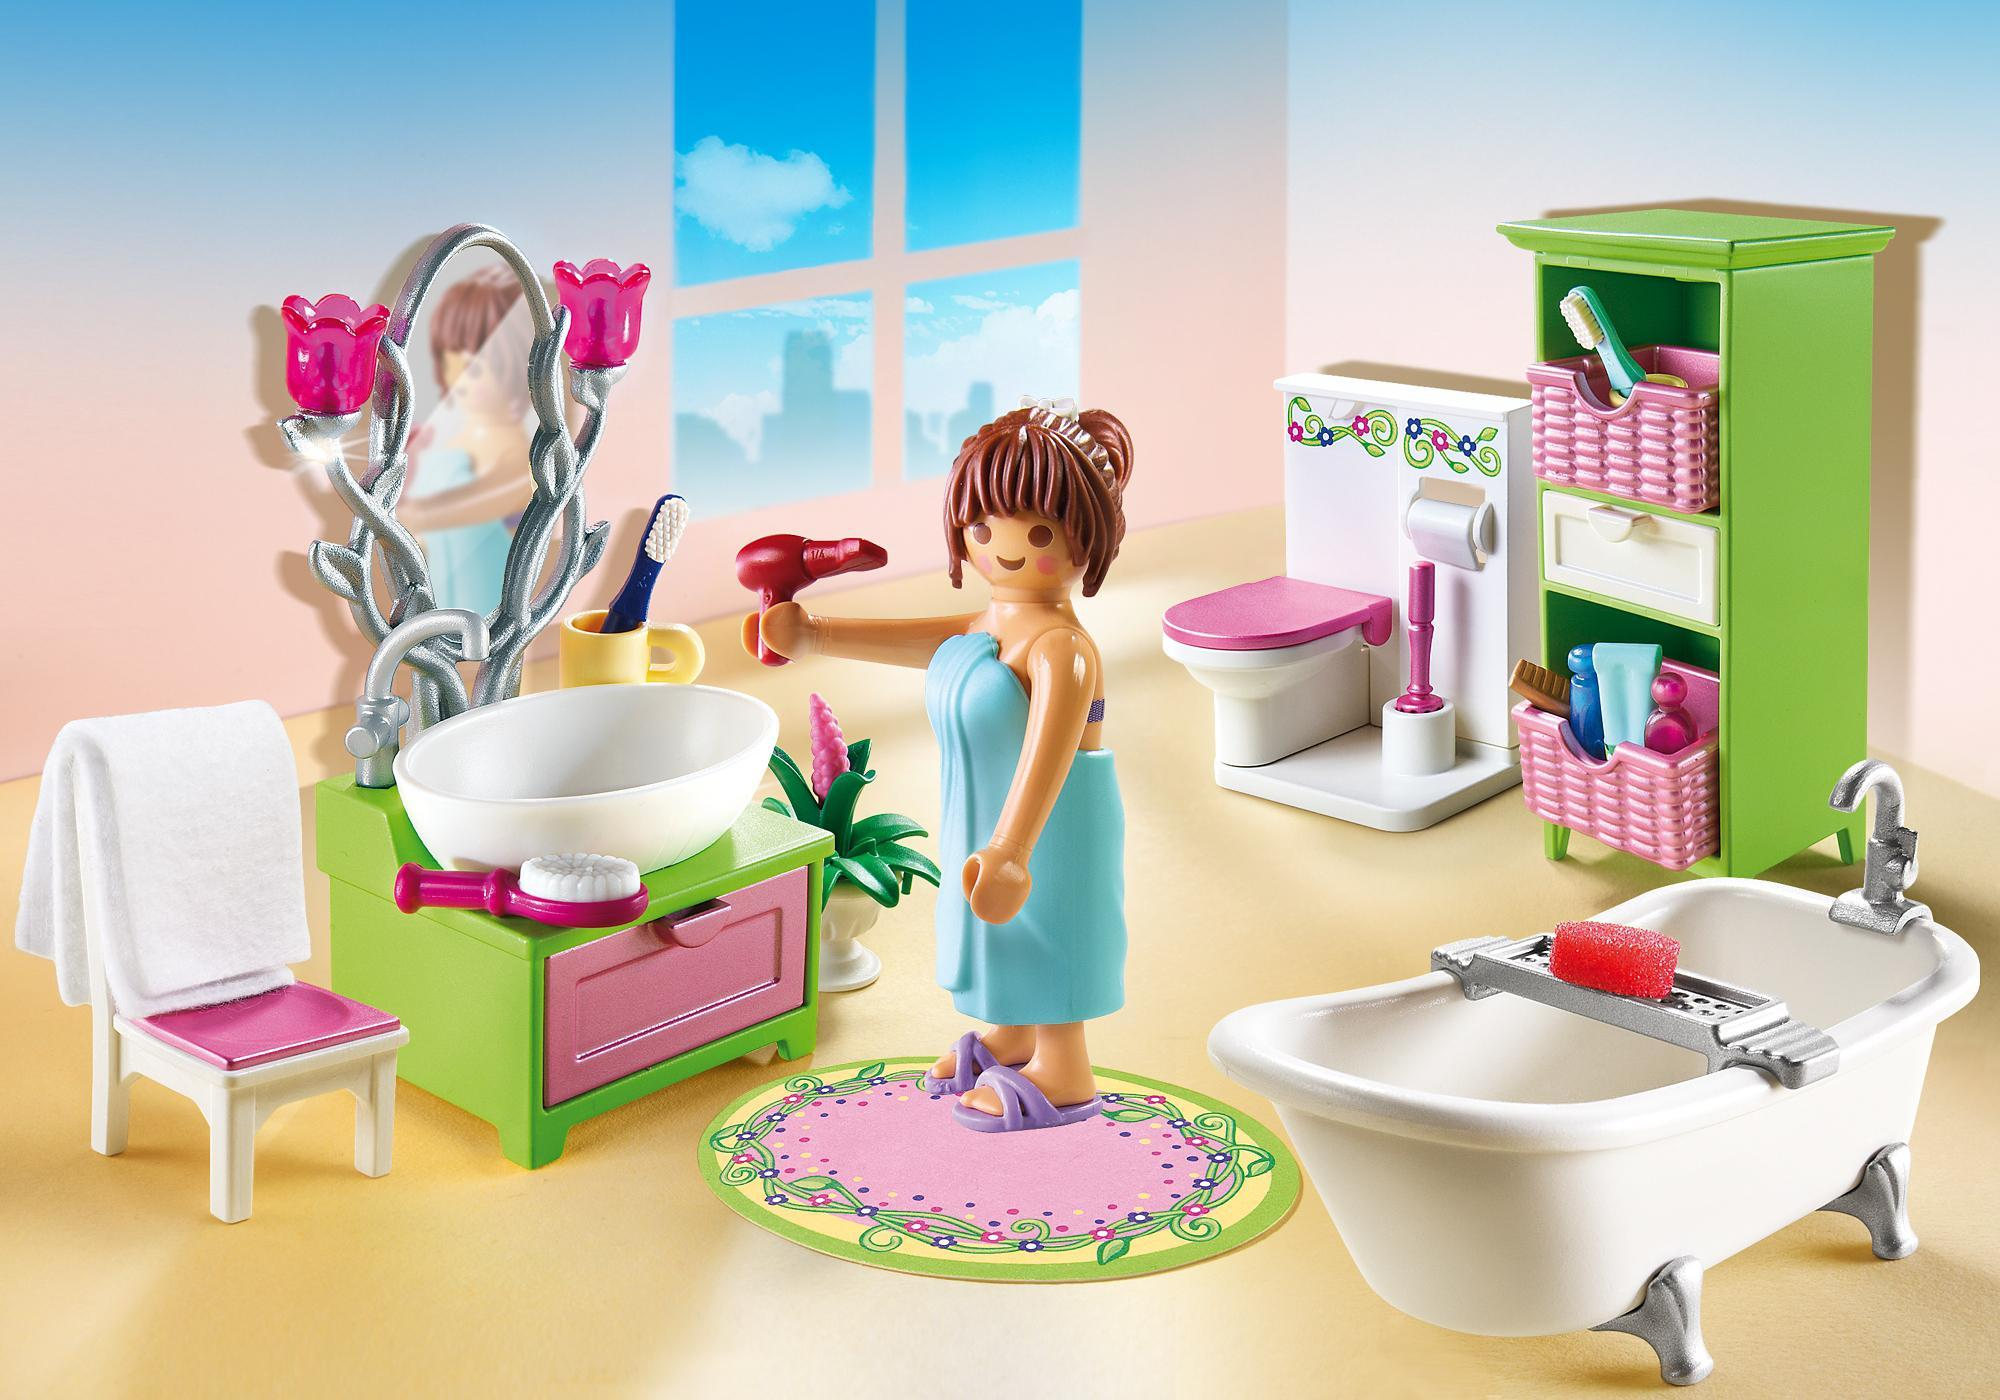 http://media.playmobil.com/i/playmobil/5307_product_detail/Romantik-Bad